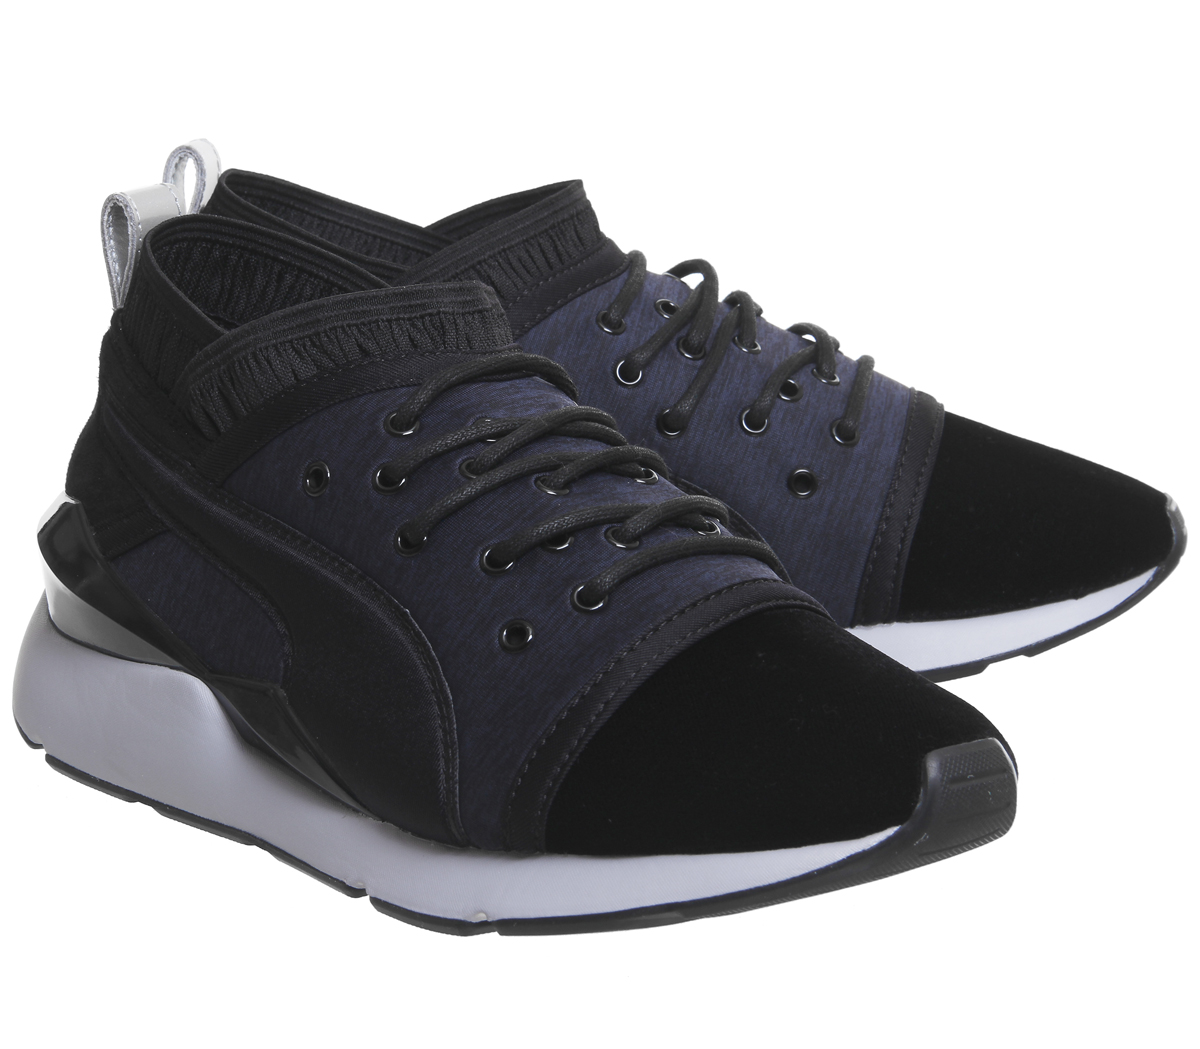 ac4e990afe38 Sentinel Womens Puma Pearl Trainers Black Blue Depths Vr Trainers Shoes